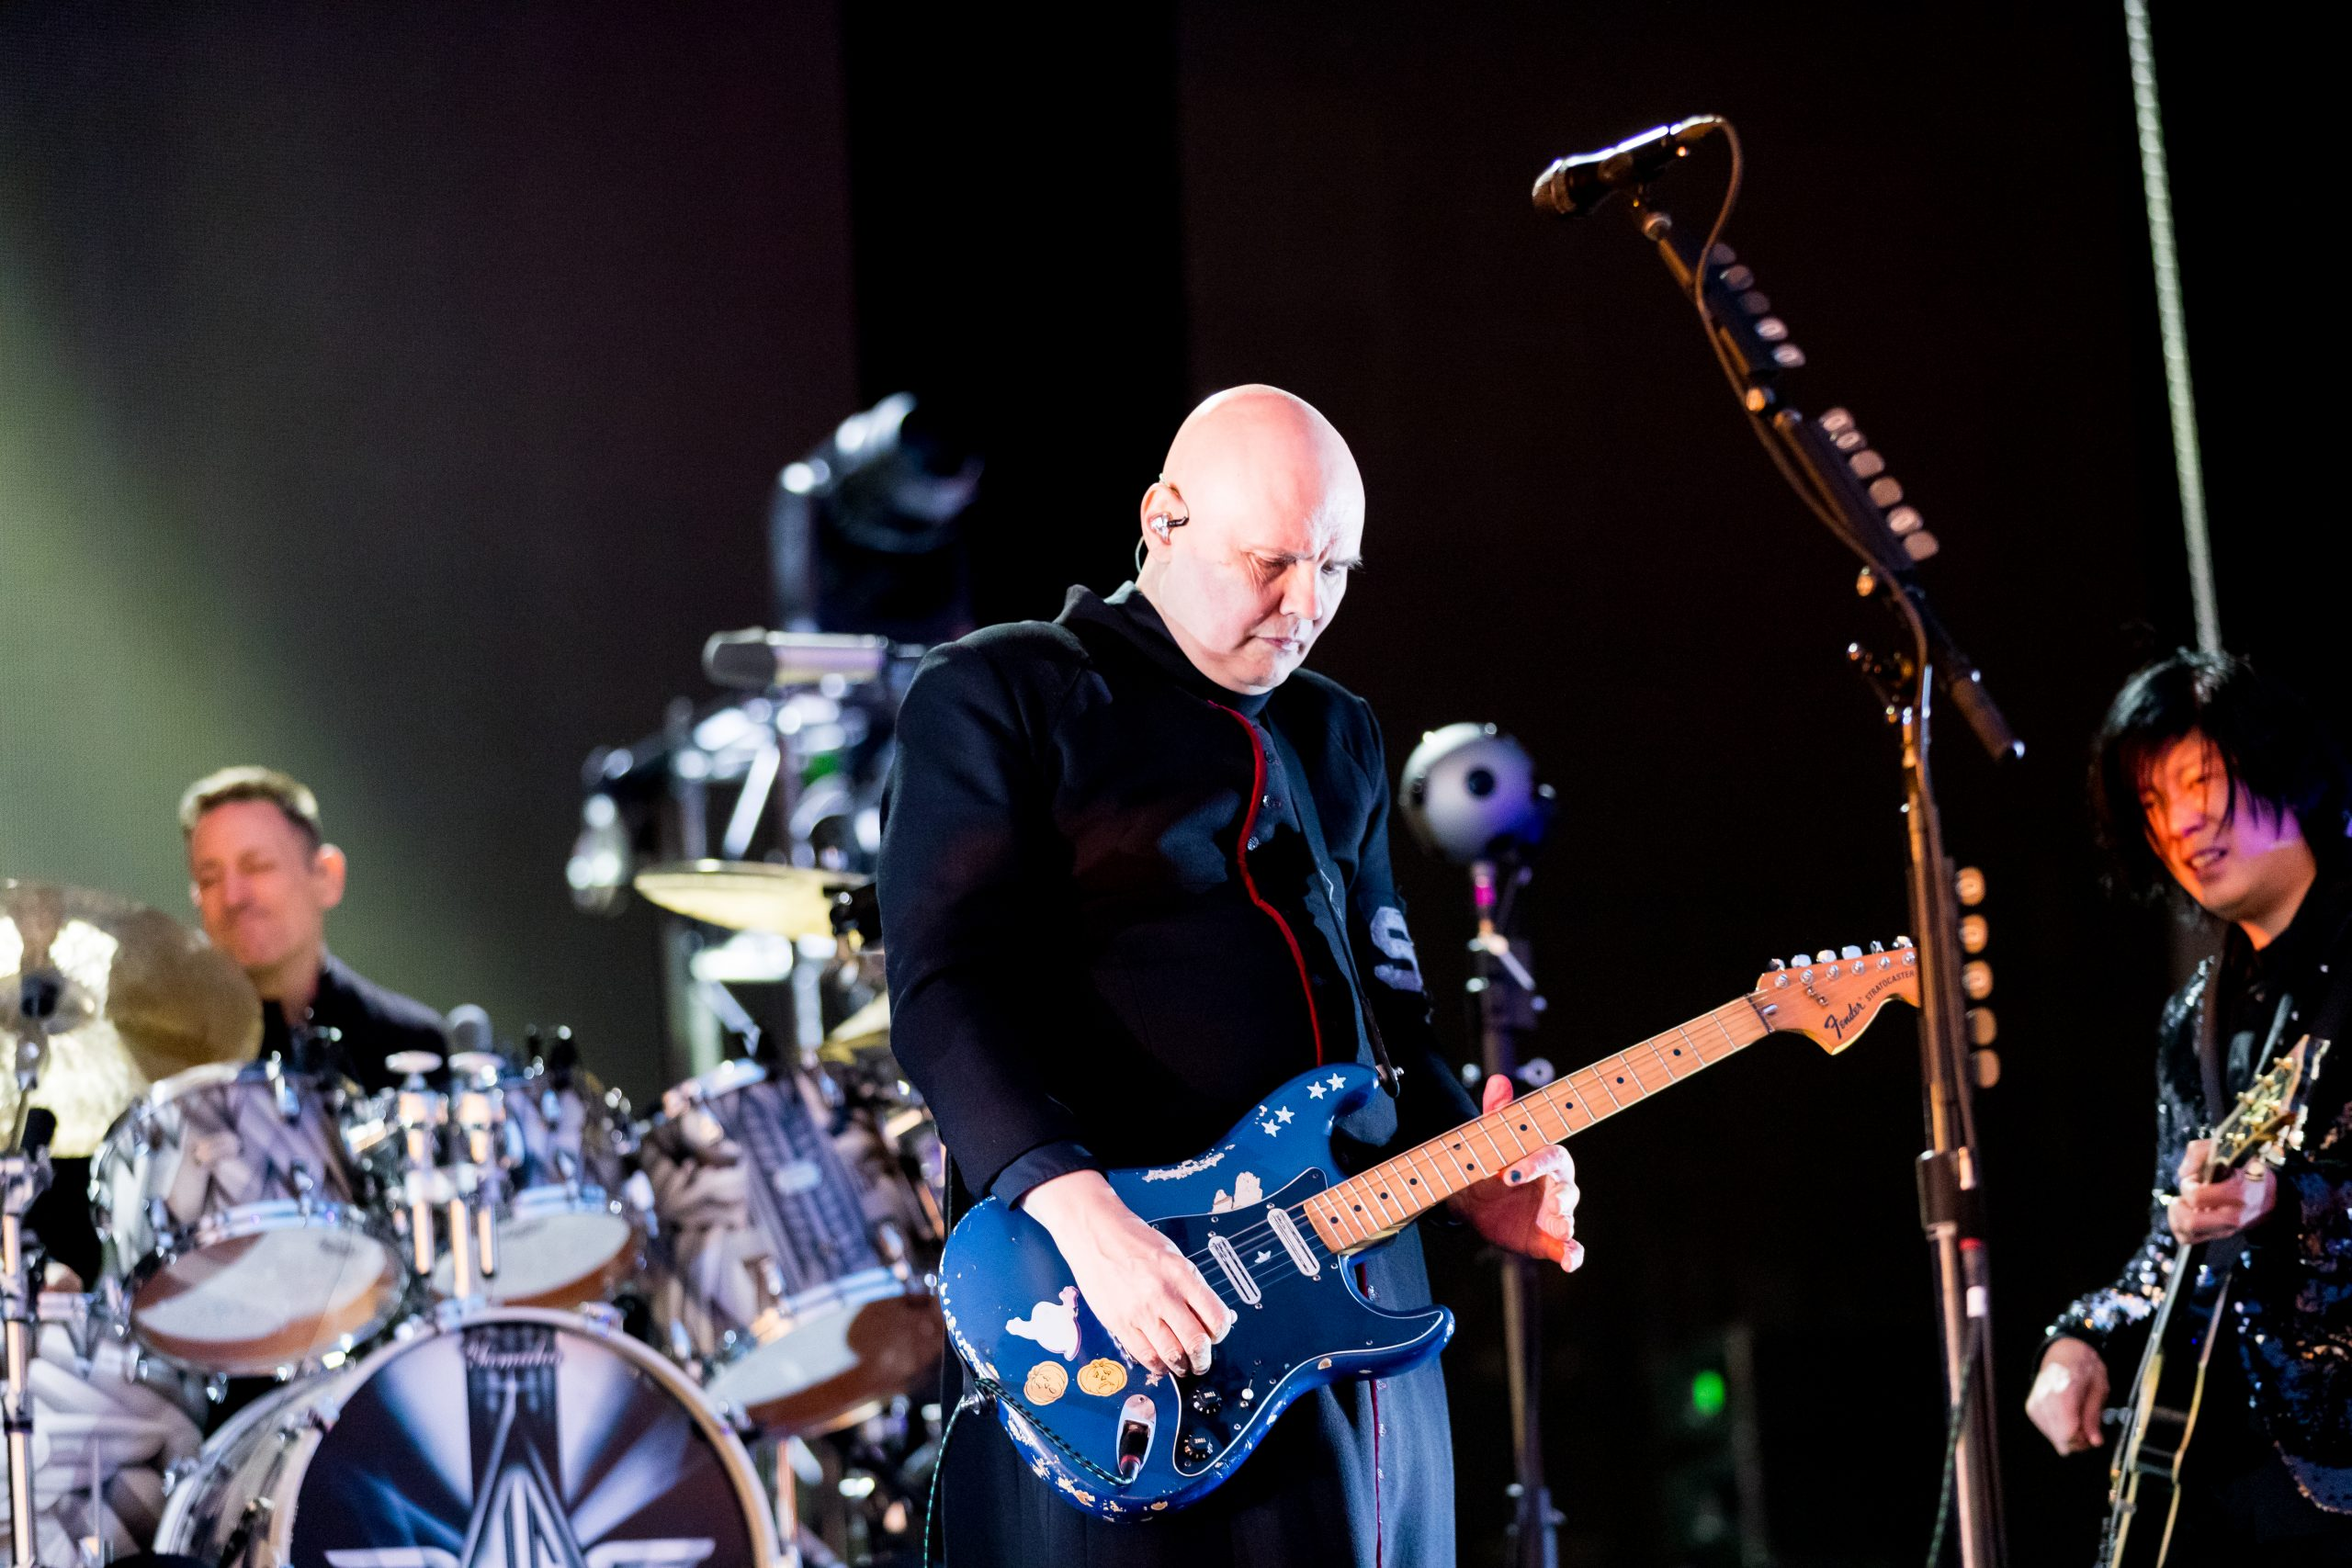 The Smashing Pumpkins 2019158213436 2019 06 07 Rock am Ring 2115 AK8I7465 scaled 20 Things You Might Not Have Realised About The 1997 Film Batman & Robin